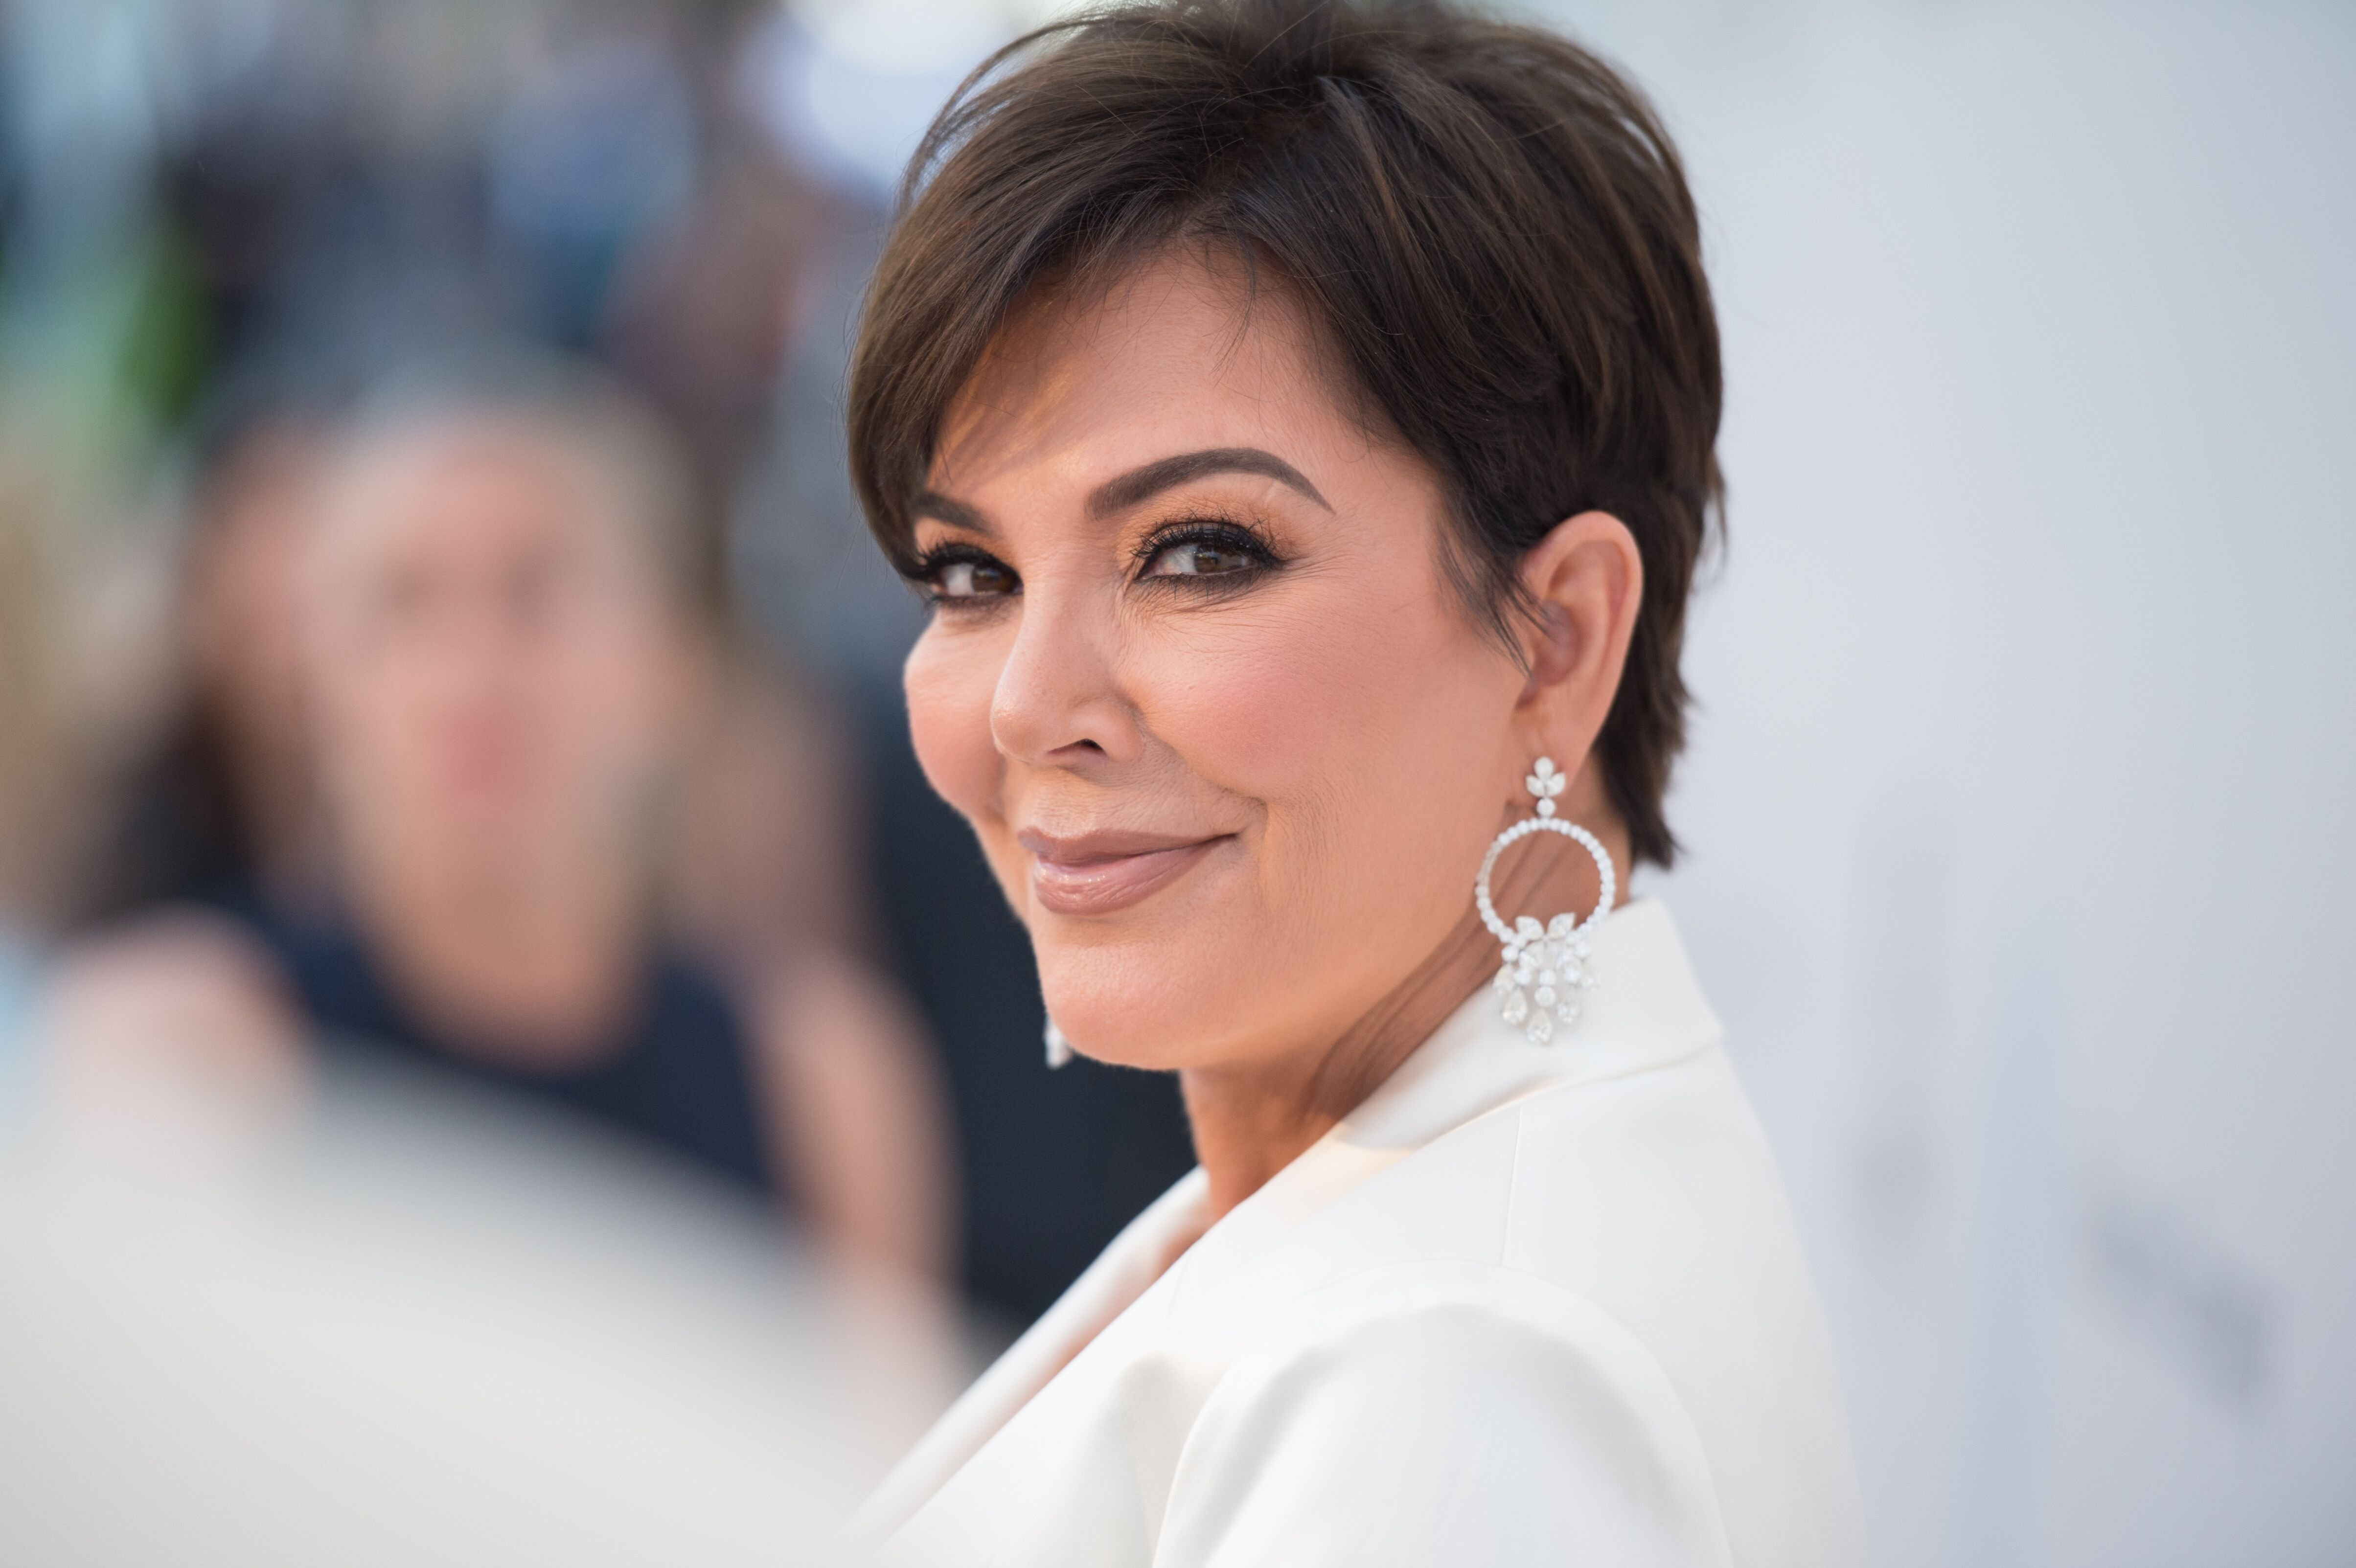 Kris Jenner attends the amfAR Cannes Gala 2019 at Hotel du Cap-Eden-Roc on May 23, 2019 in Cap d'Antibes, France | Source: Getty Images